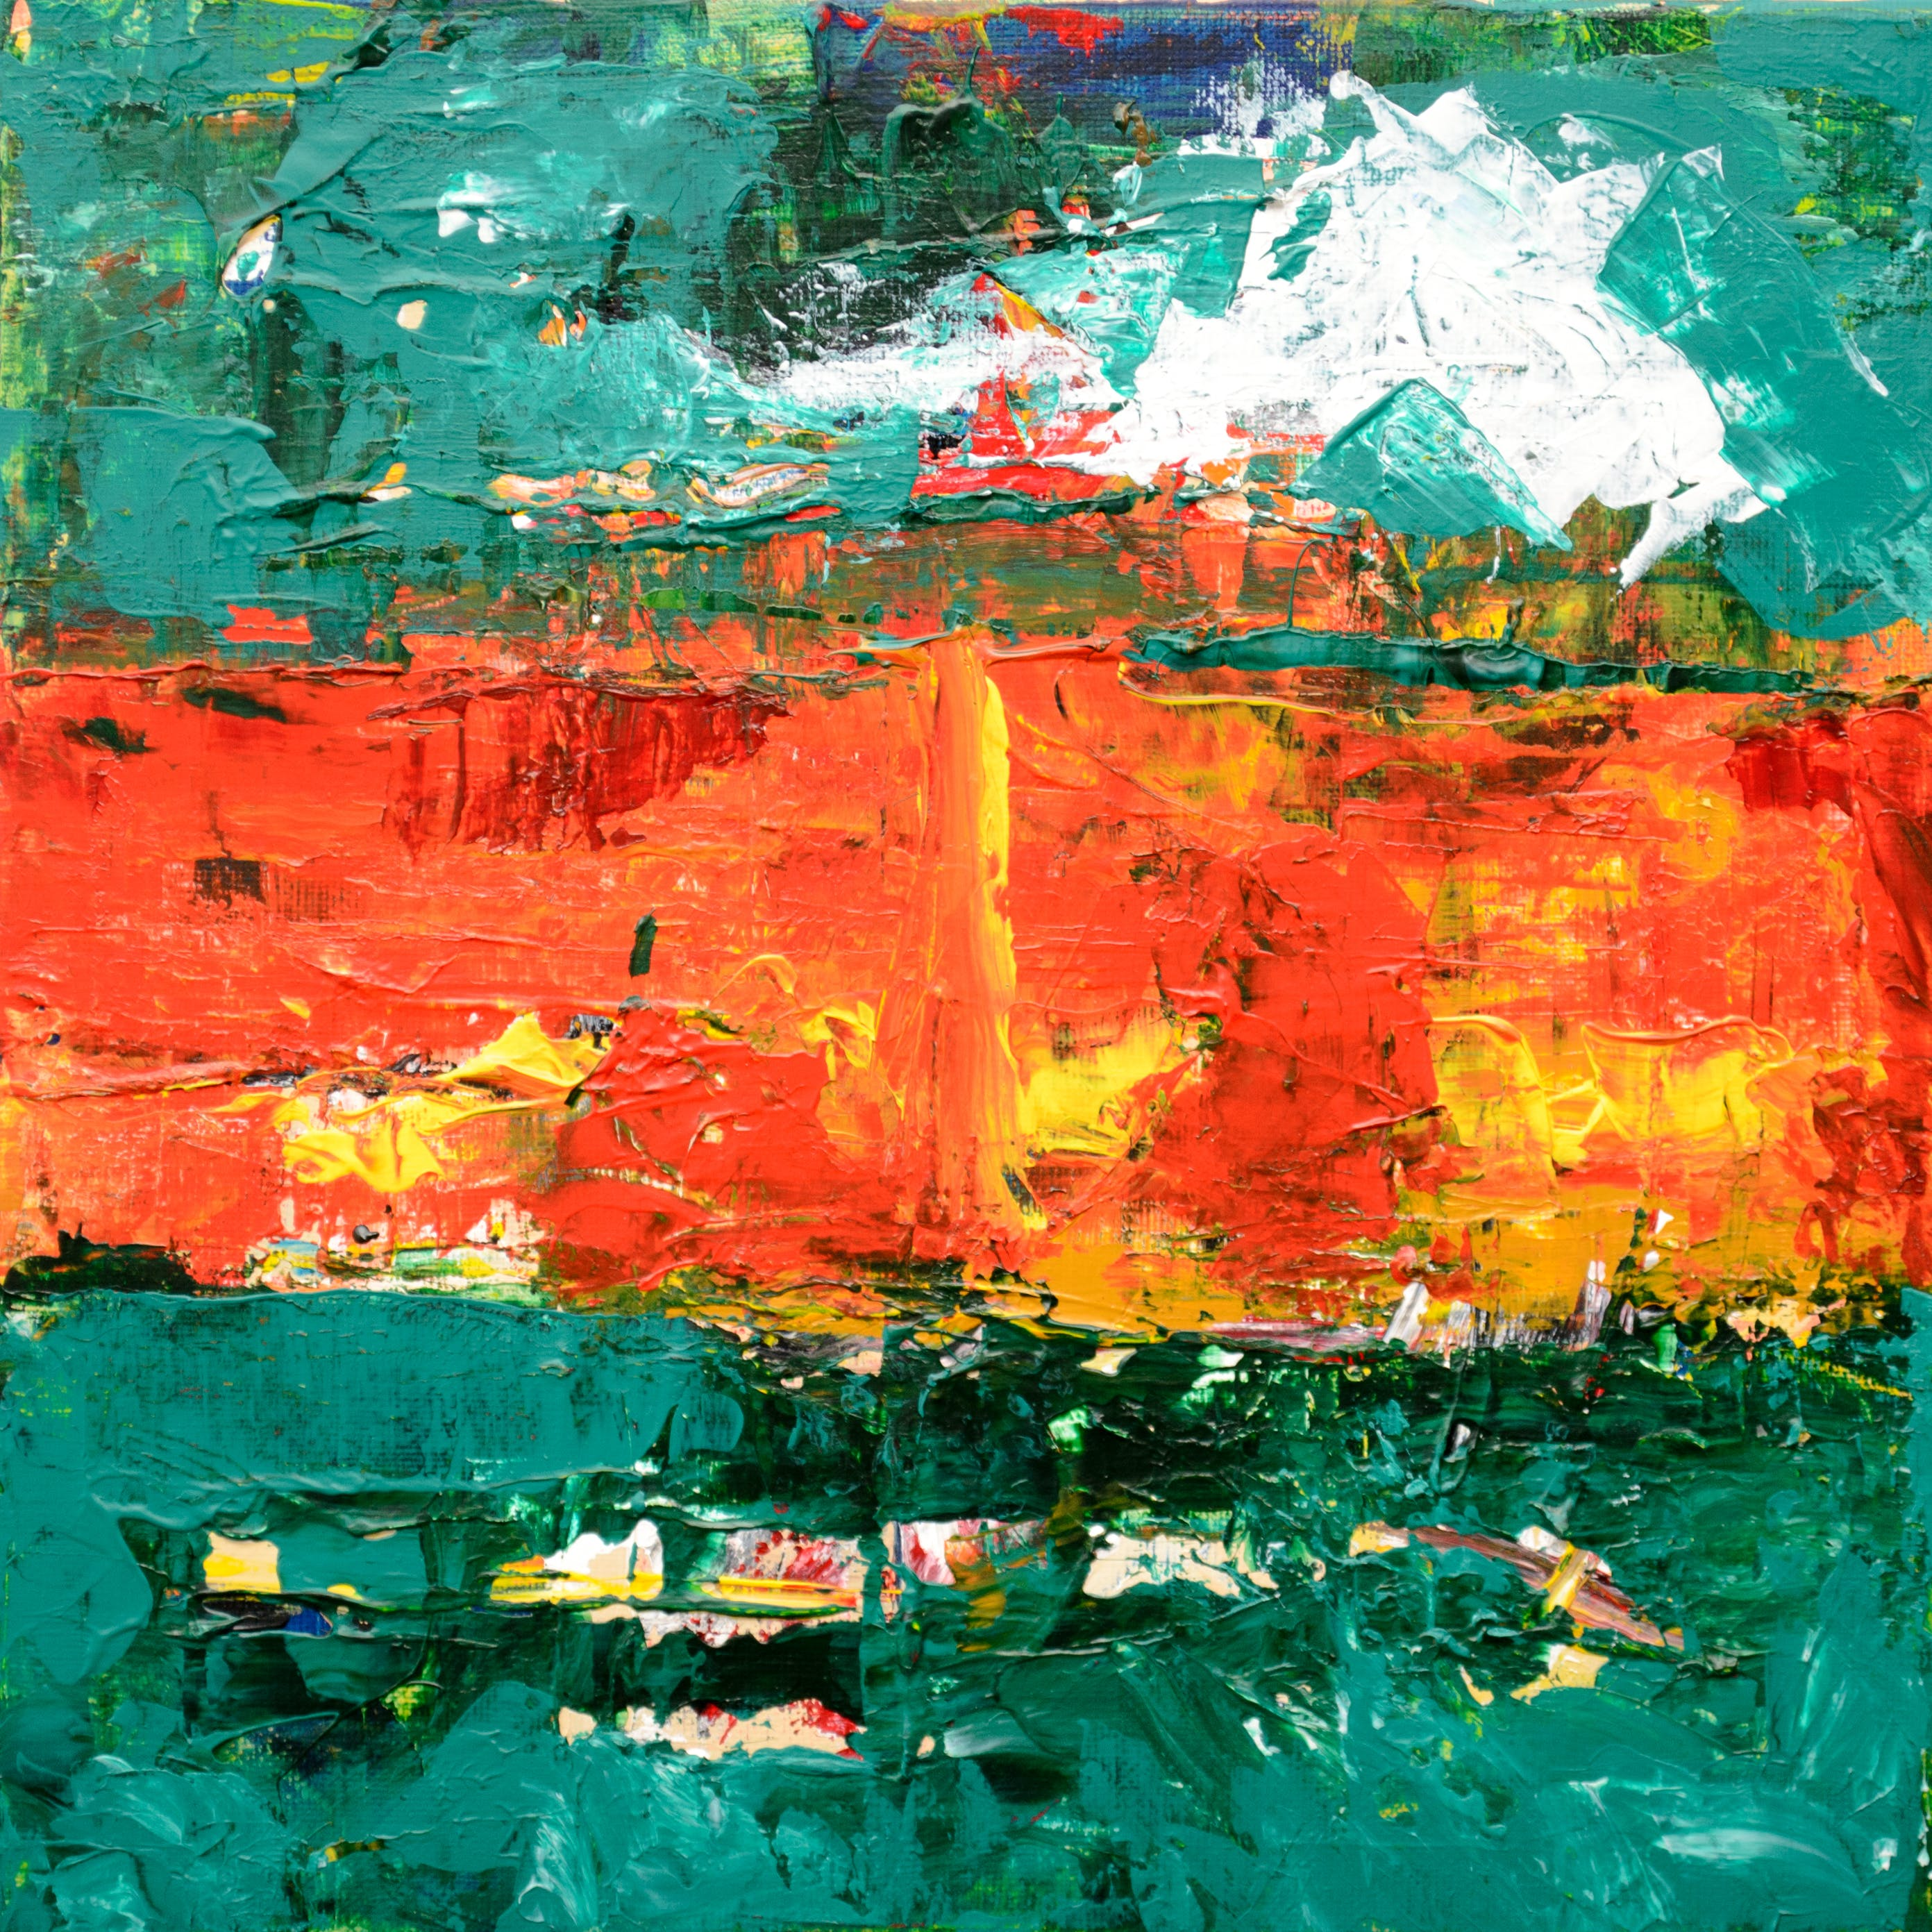 Green, Orange, and Yellow Abstract Painting